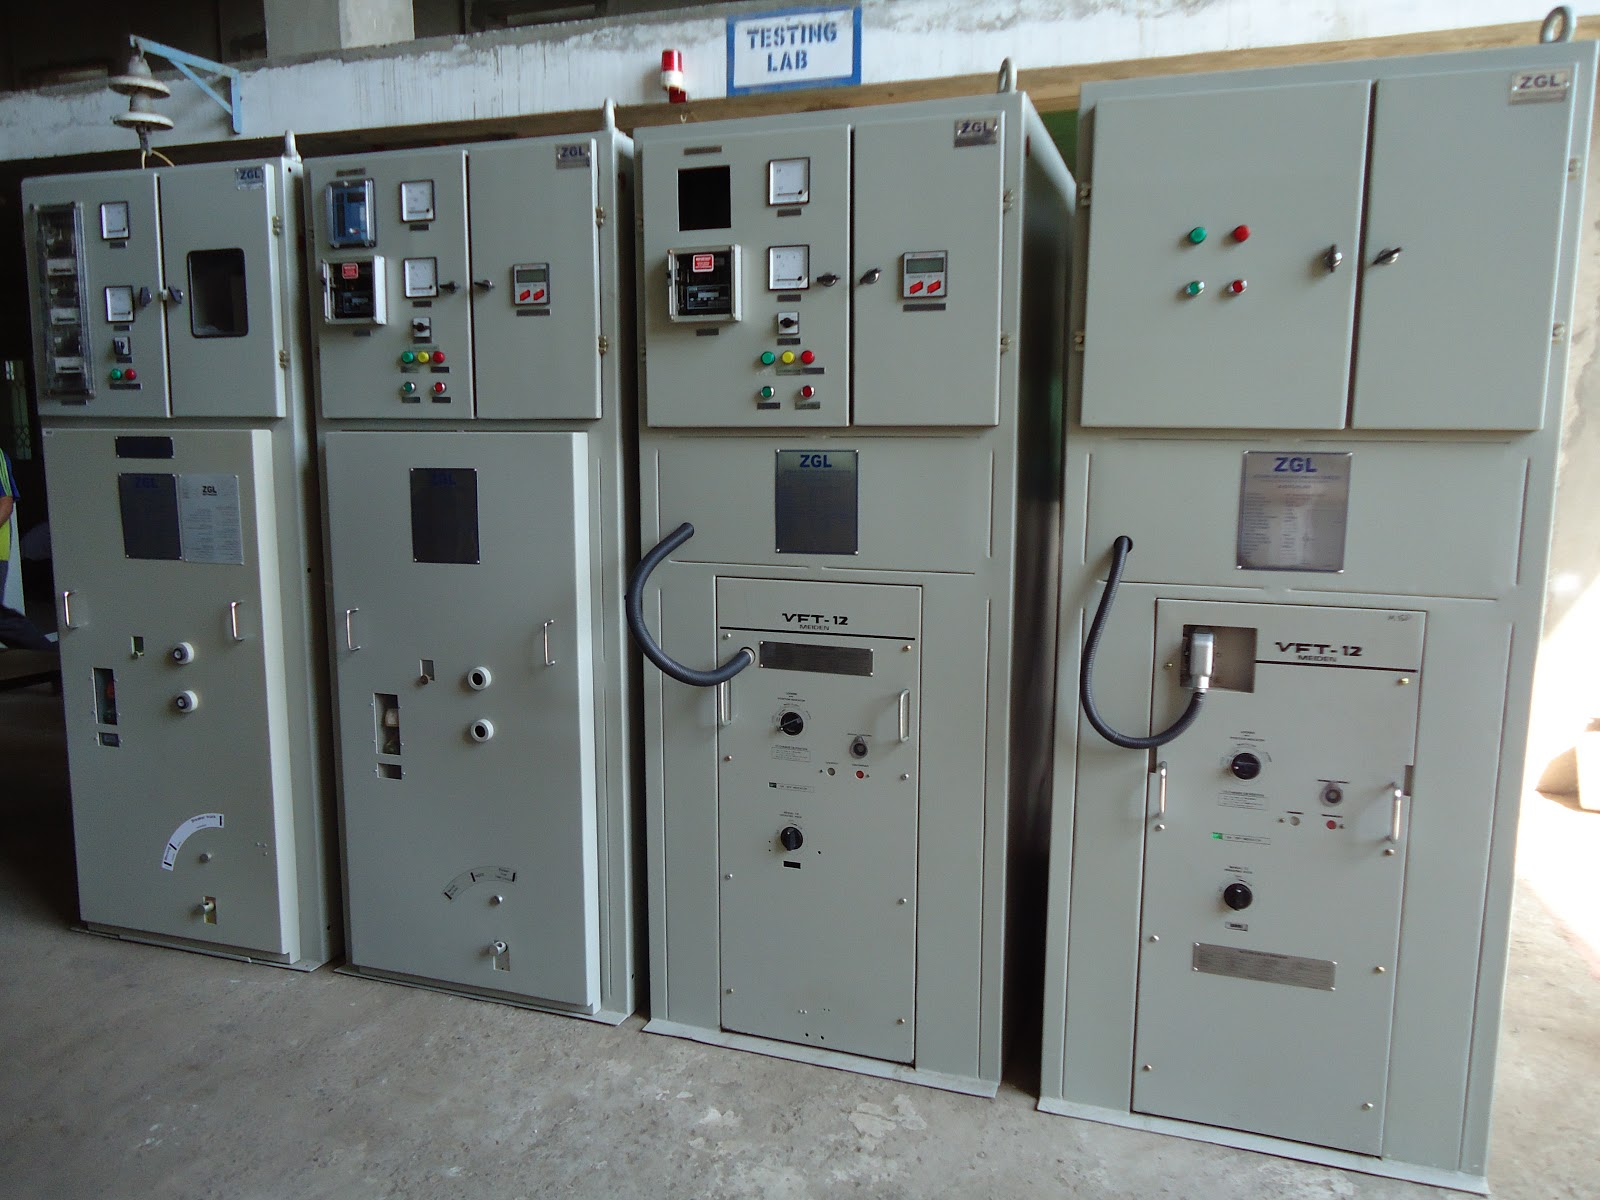 Mahgiaz Over Current Protection Of 11kv Metalclad Switchgear Relay For 25ka The Relays Shall Operate On Dc